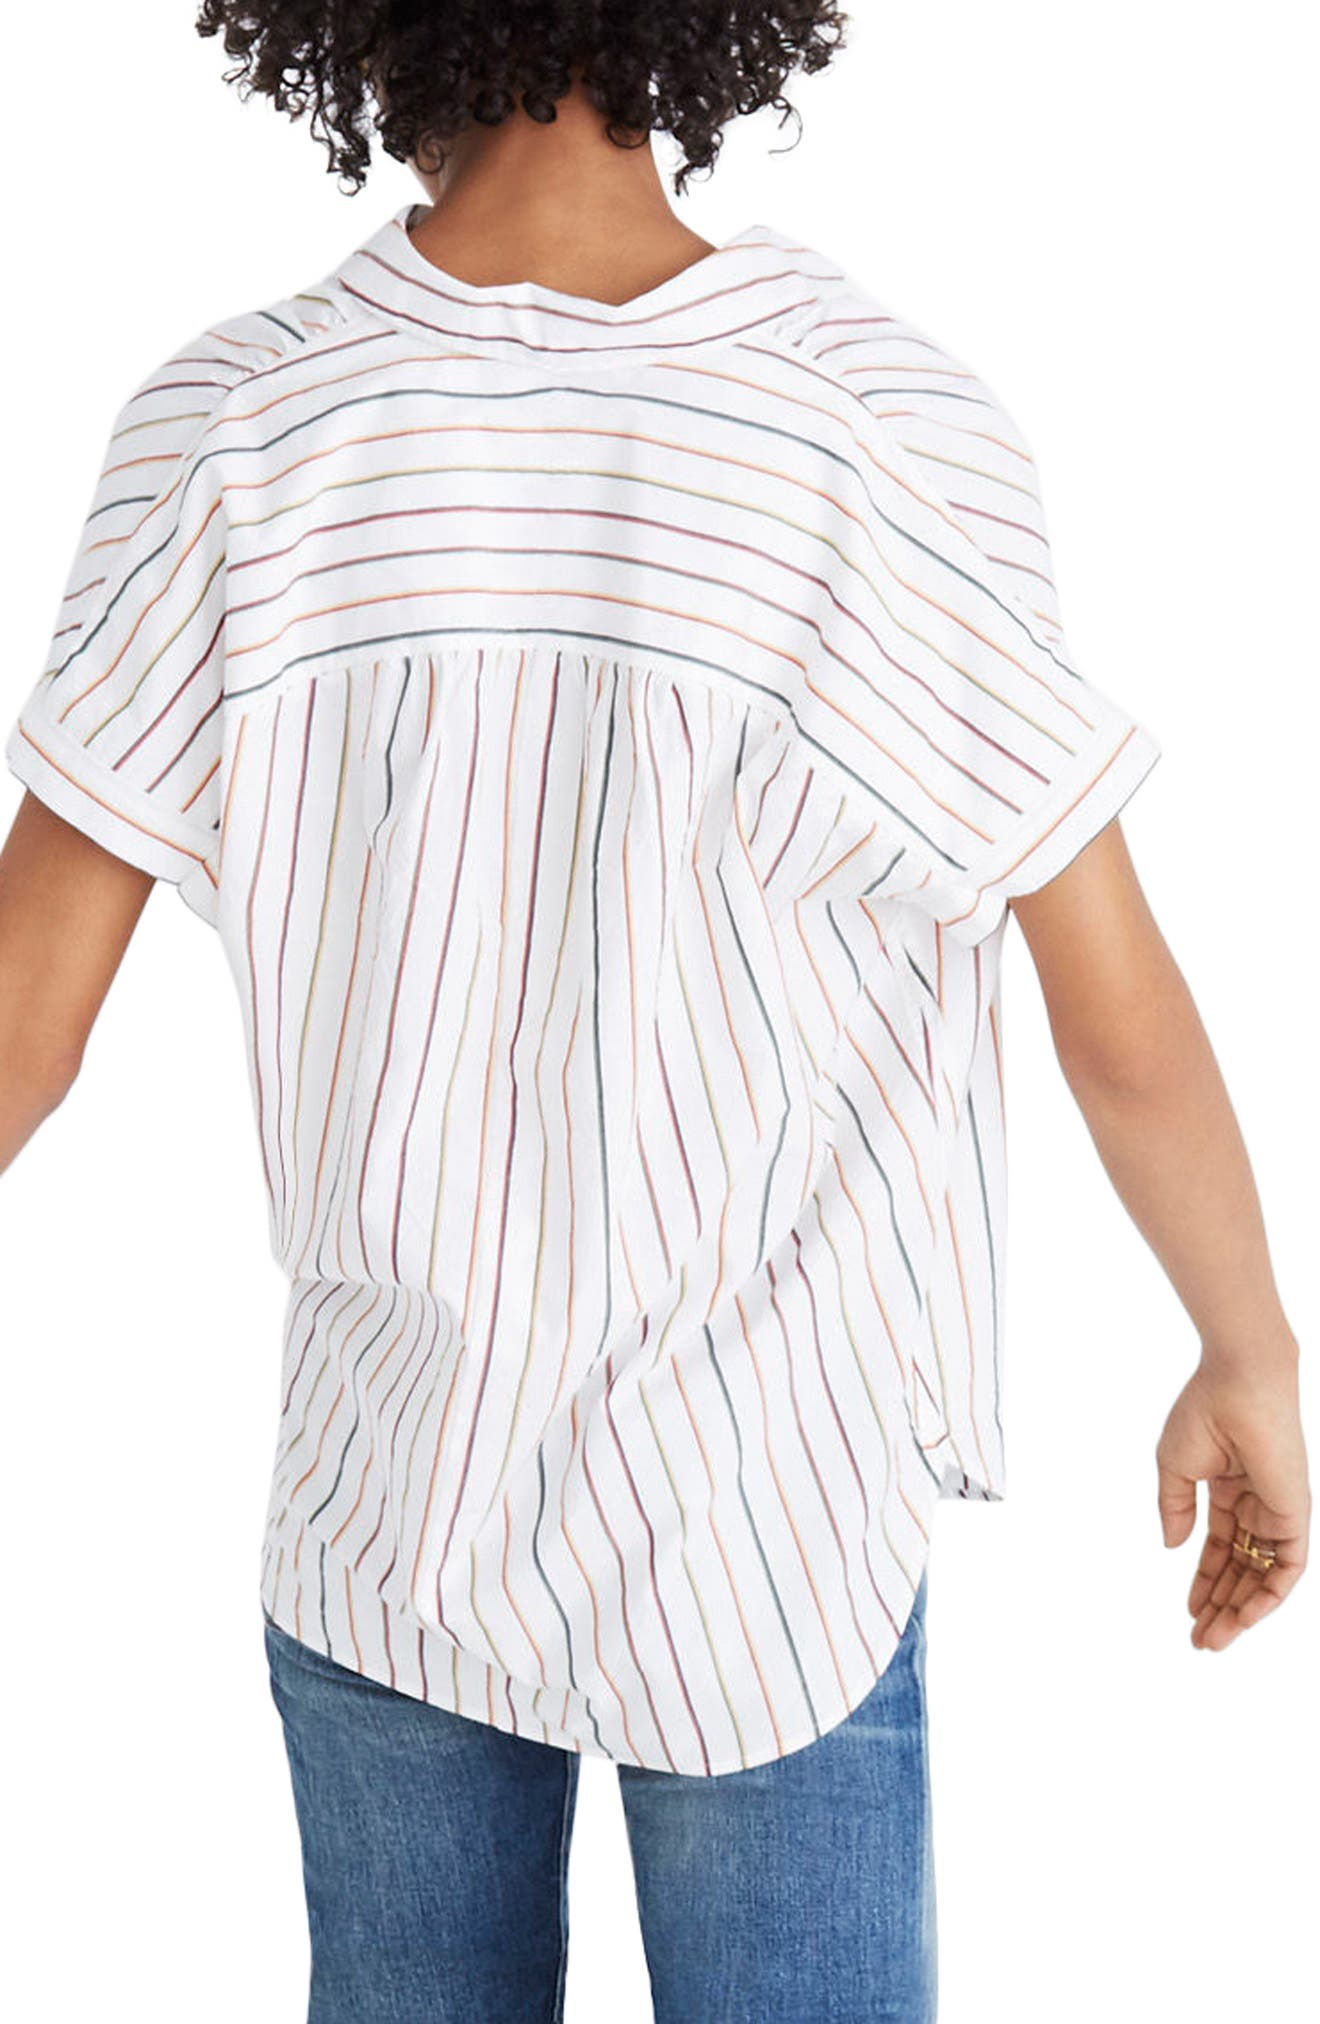 Central Sadie Stripe Shirt,                         Main,                         color, 100